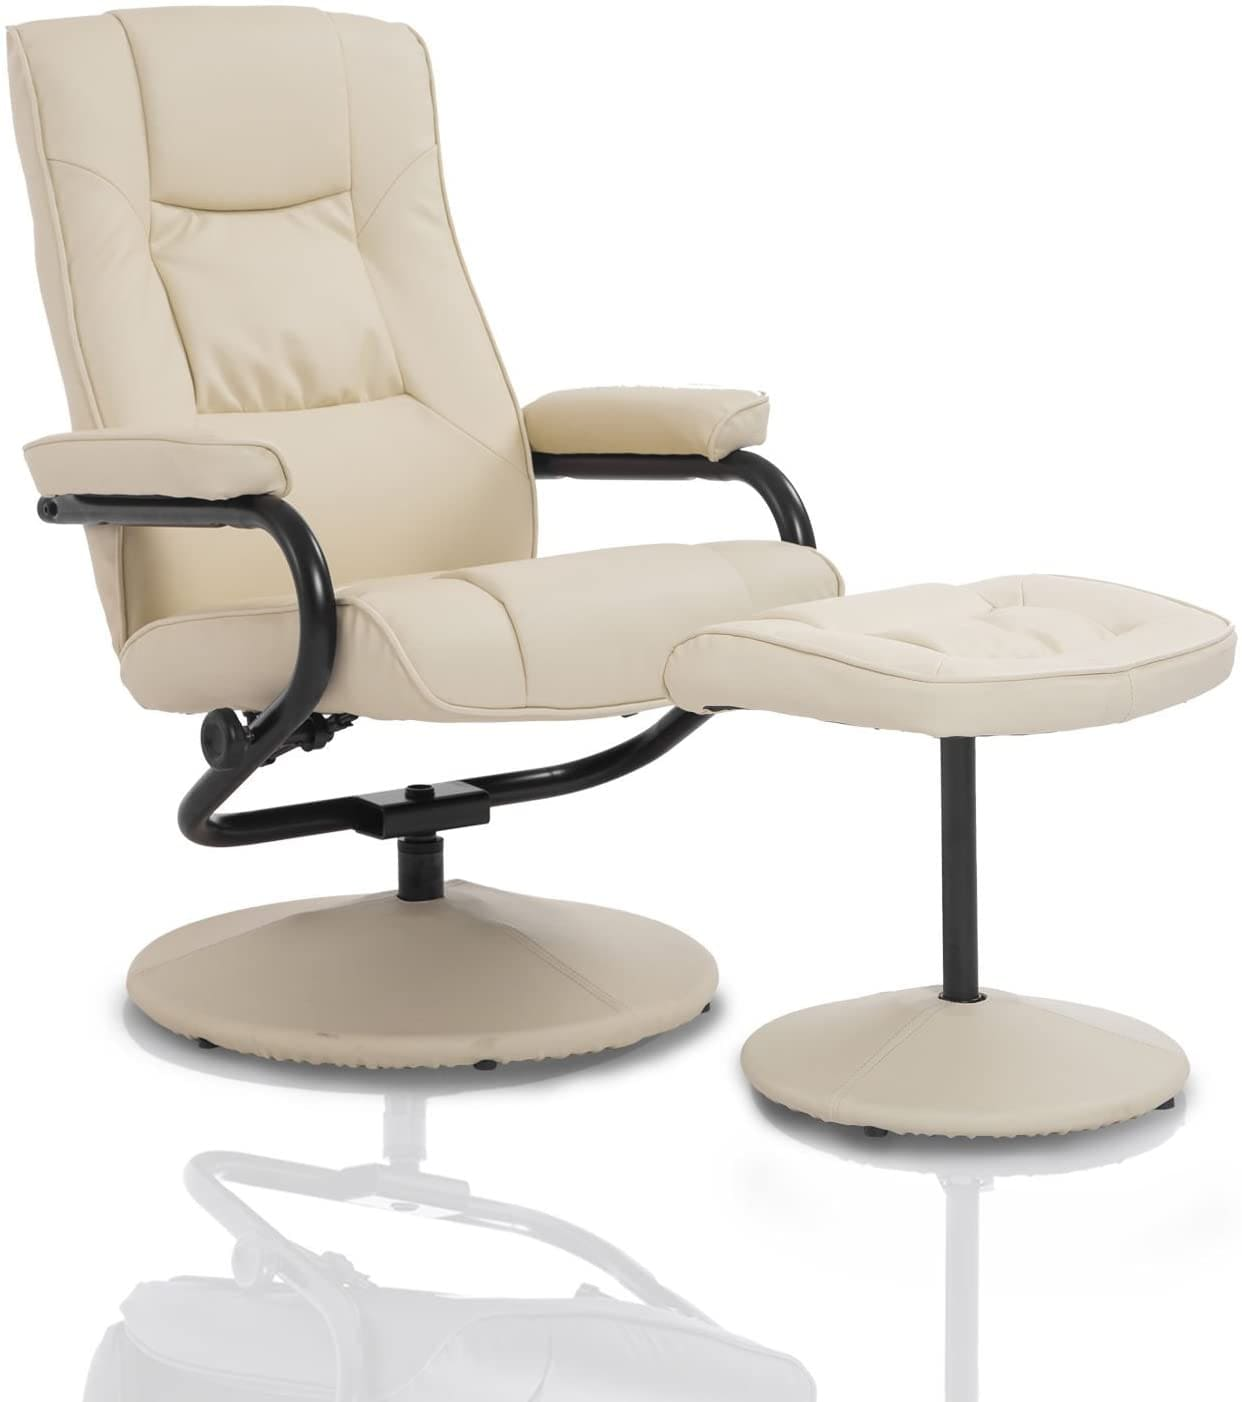 leather recliner swivel chair with matching footstool